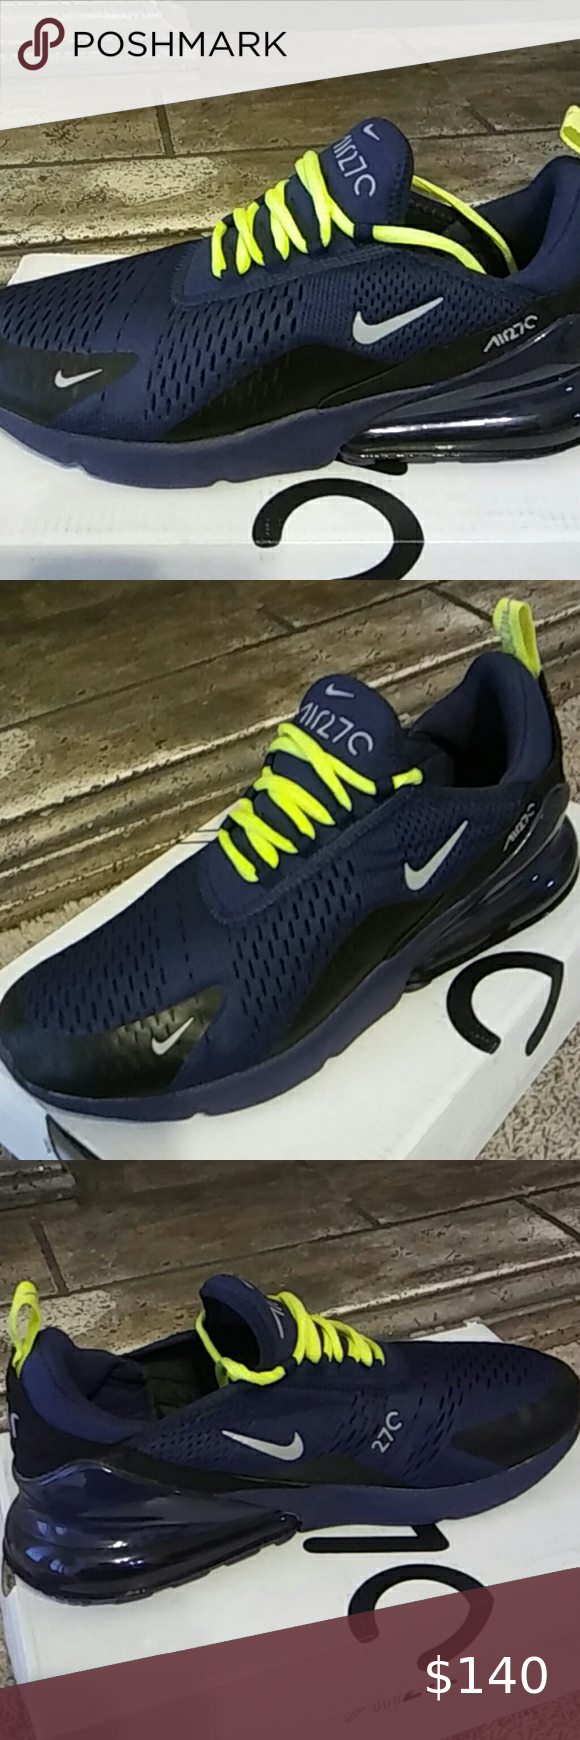 Air Max 270 Seattle Seahawks color blue